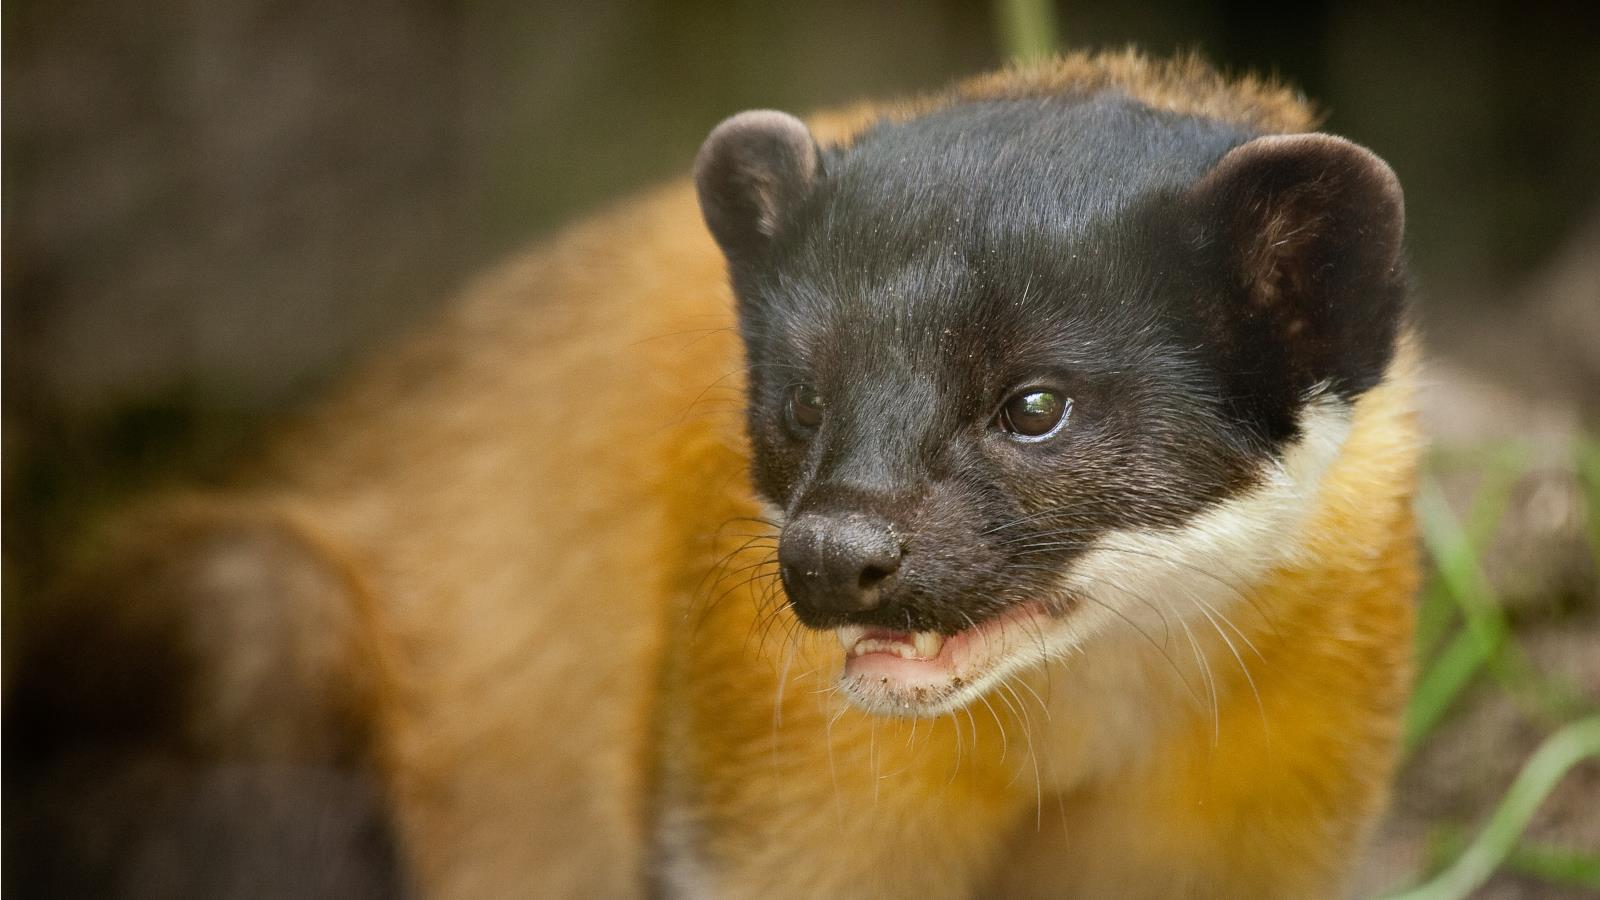 Marten Wallpapers hd